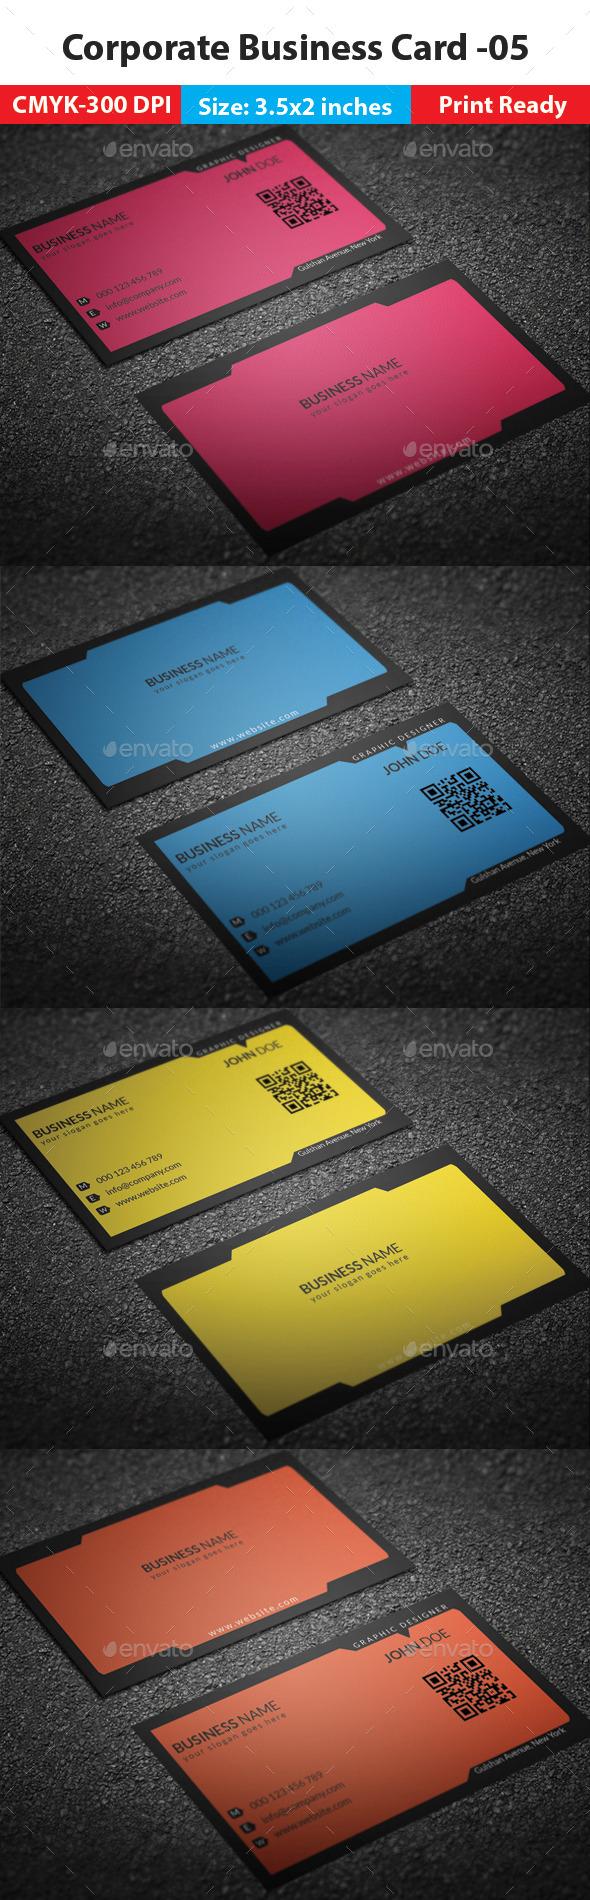 Corporate Business Card -05 - Corporate Business Cards